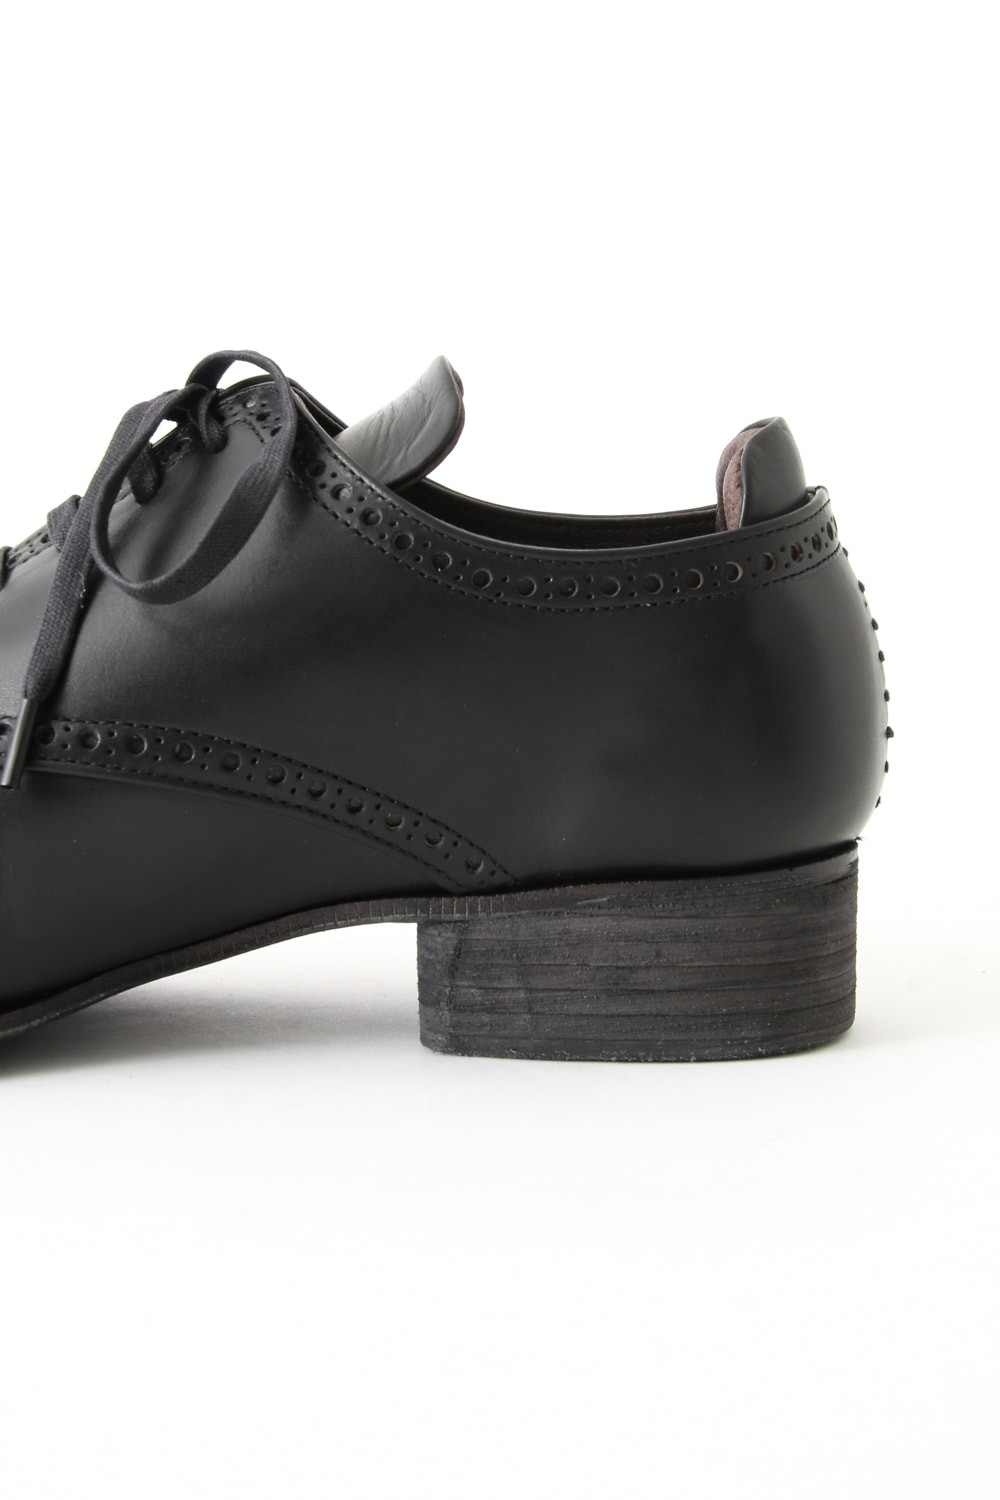 Guidi Leather shoes Black